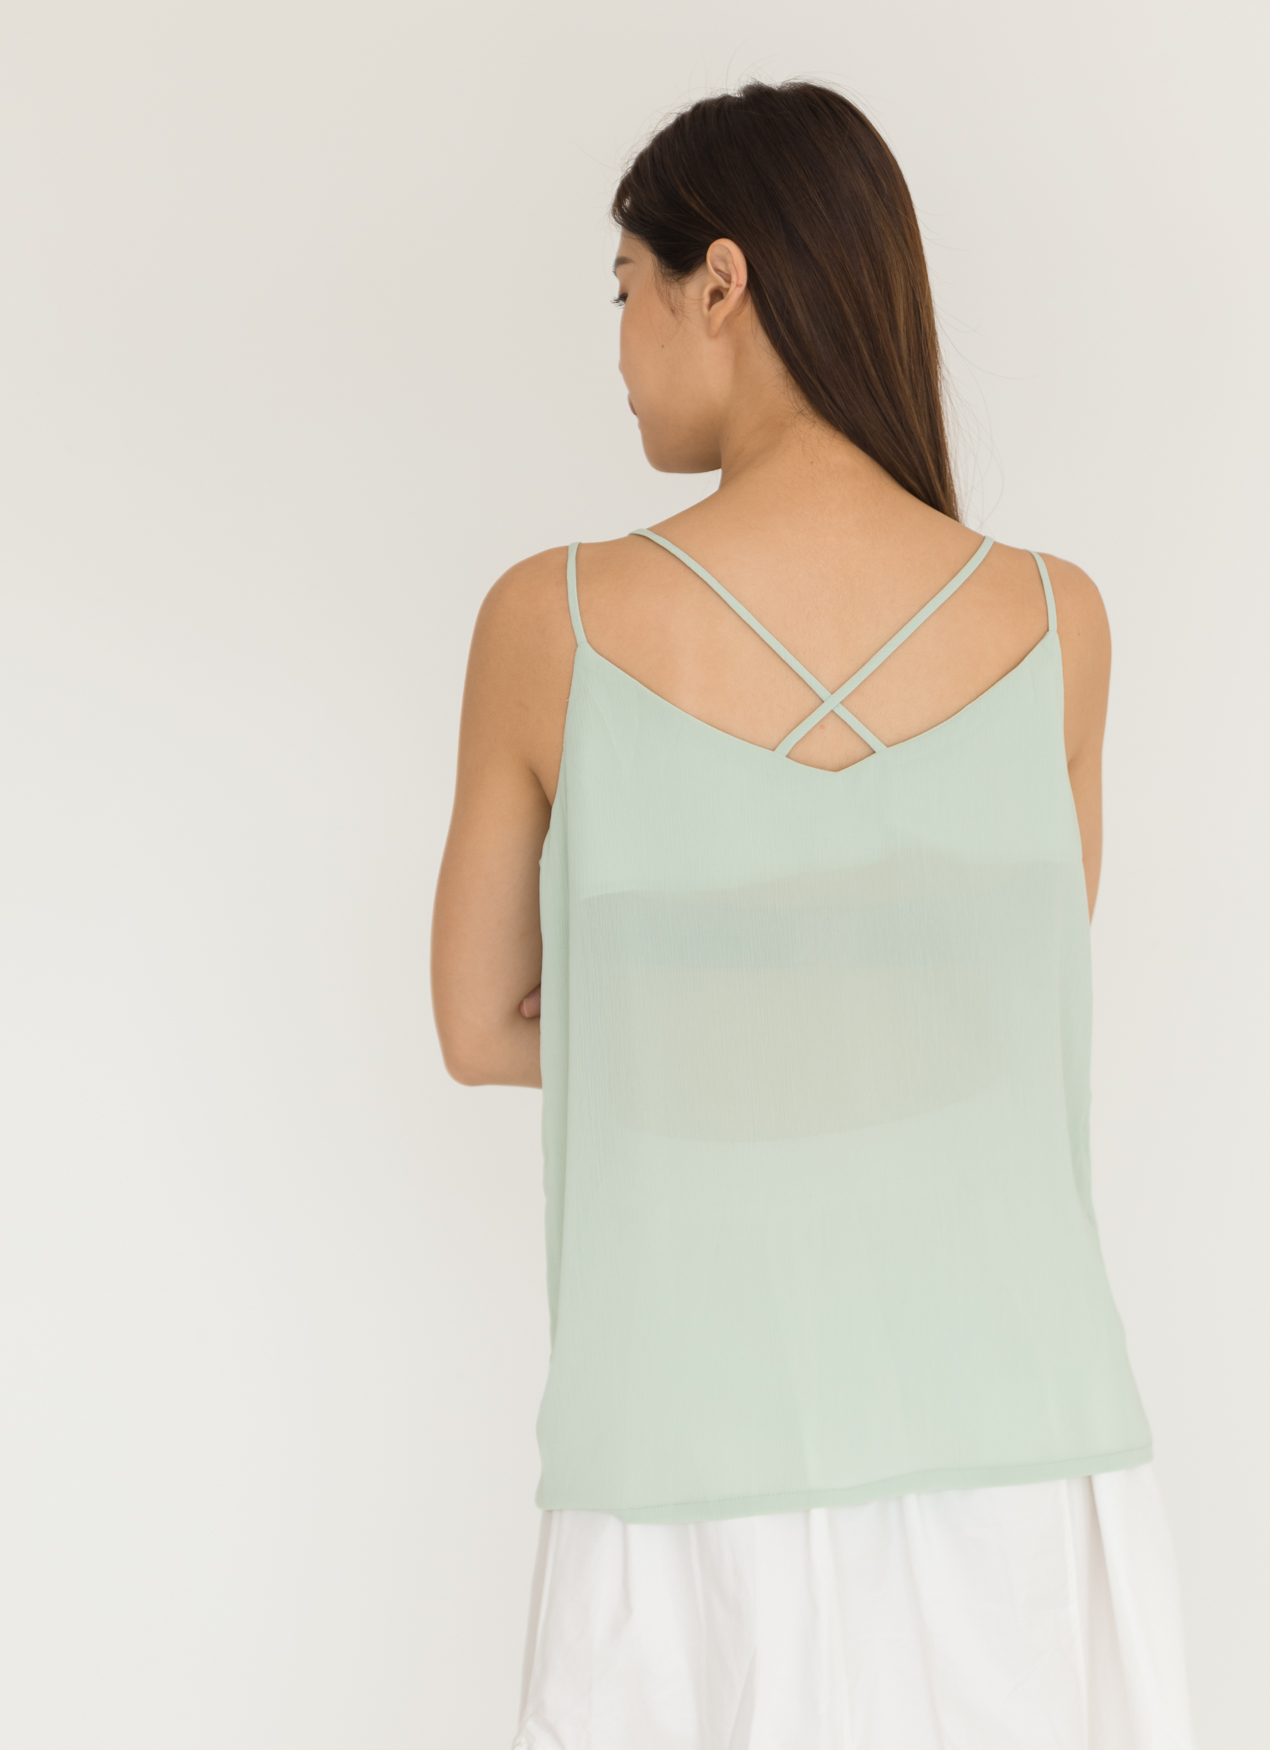 BOWN Freya Top - Green